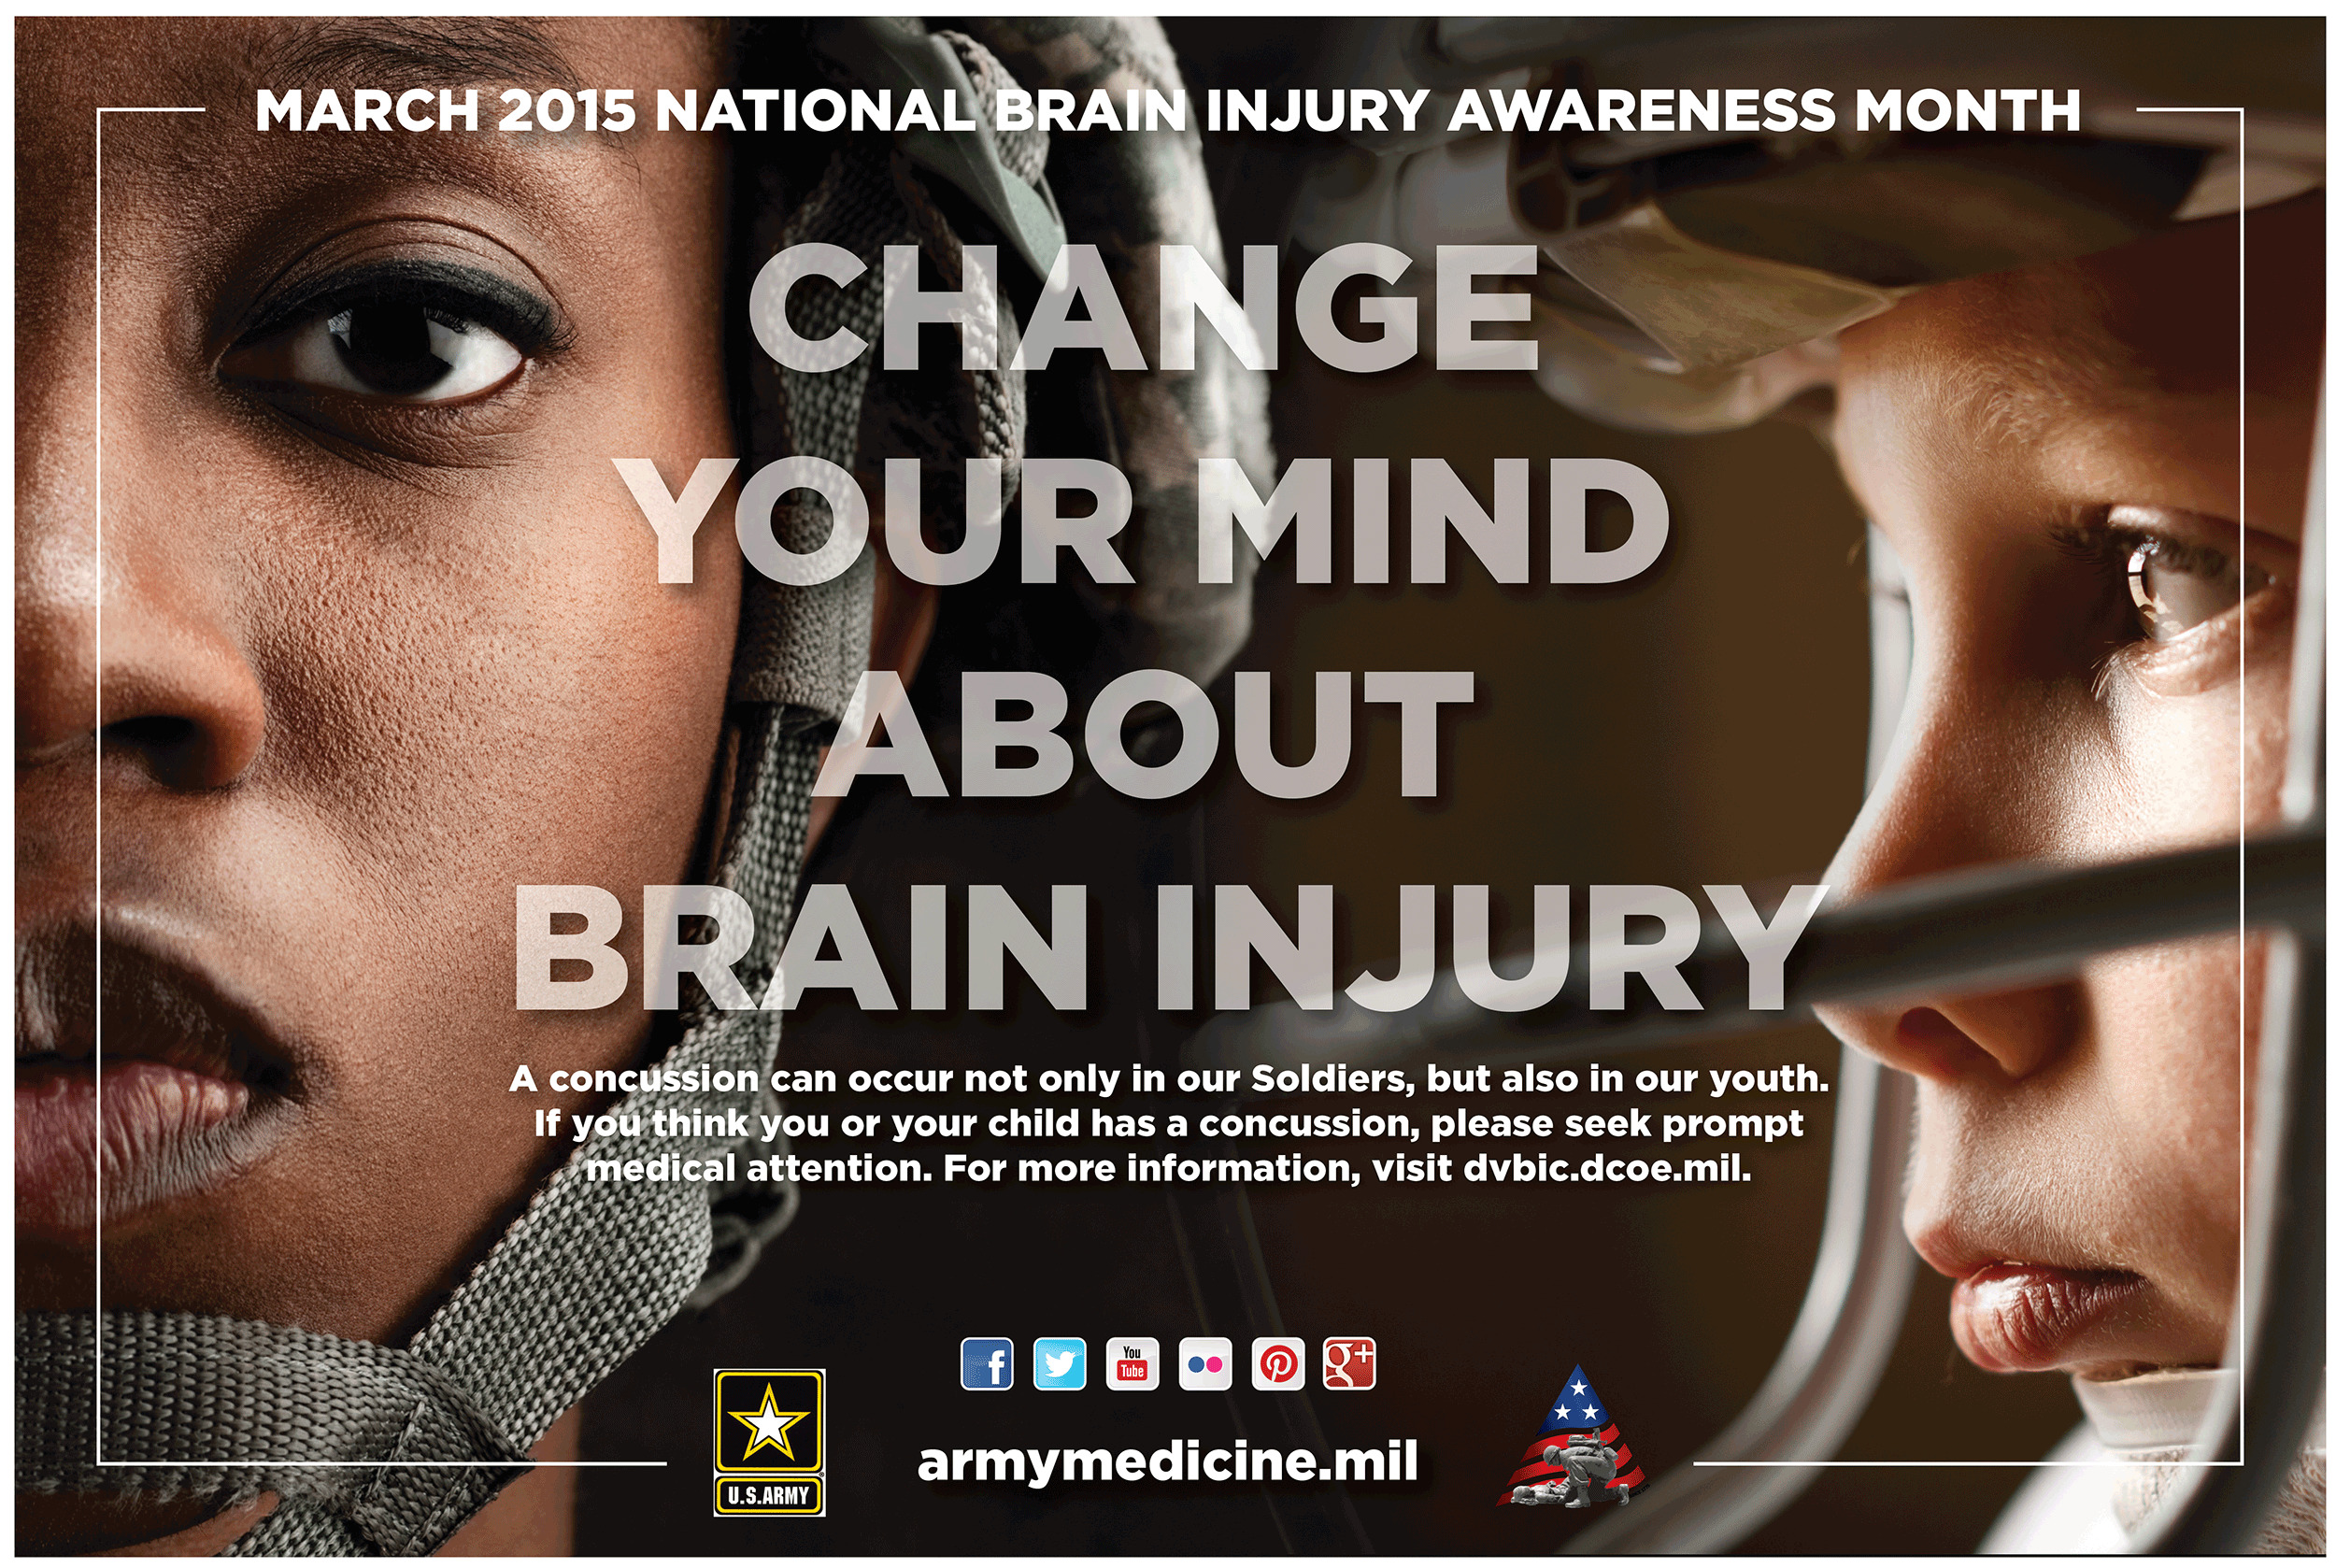 Poster design by Virtual Apiary for Army Medicine